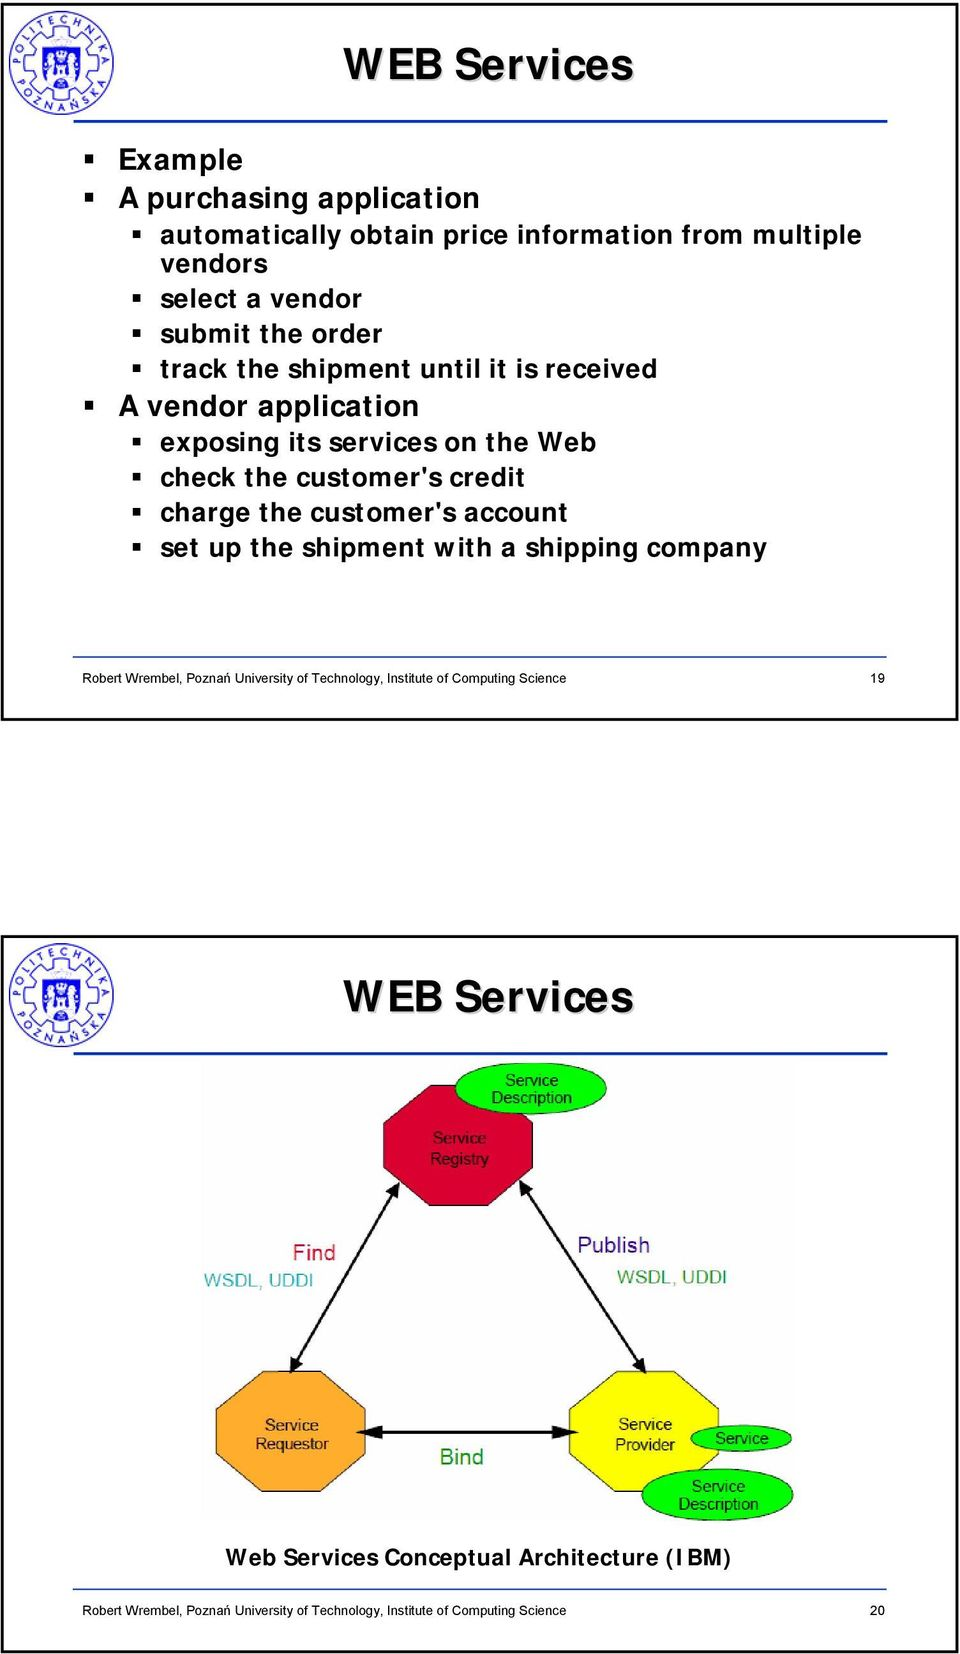 application exposing its services on the Web check the customer's credit charge the customer's